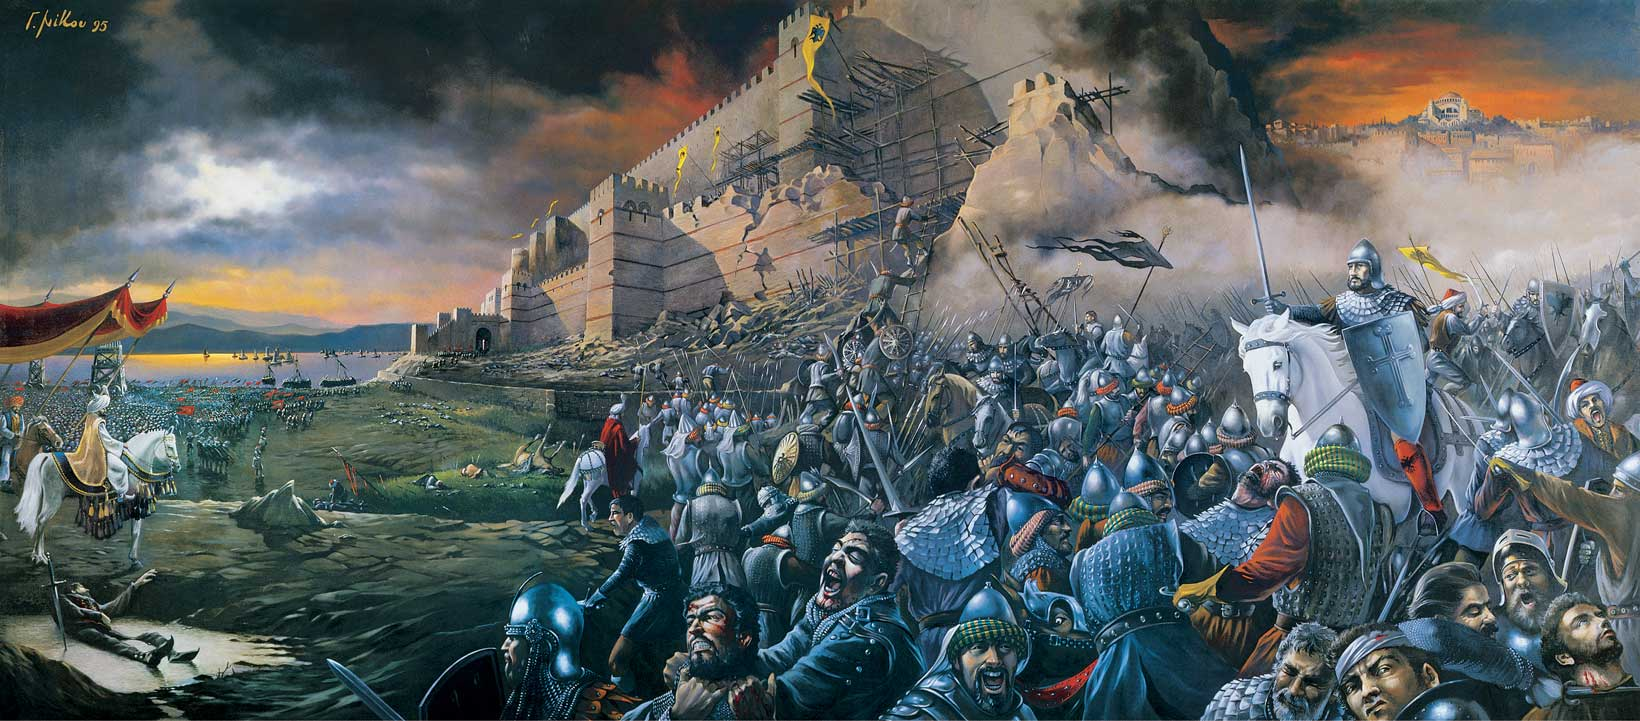 Christian Wallpaper Fall A Tale Of Blood And Slaughter The Fall Of Constantinople